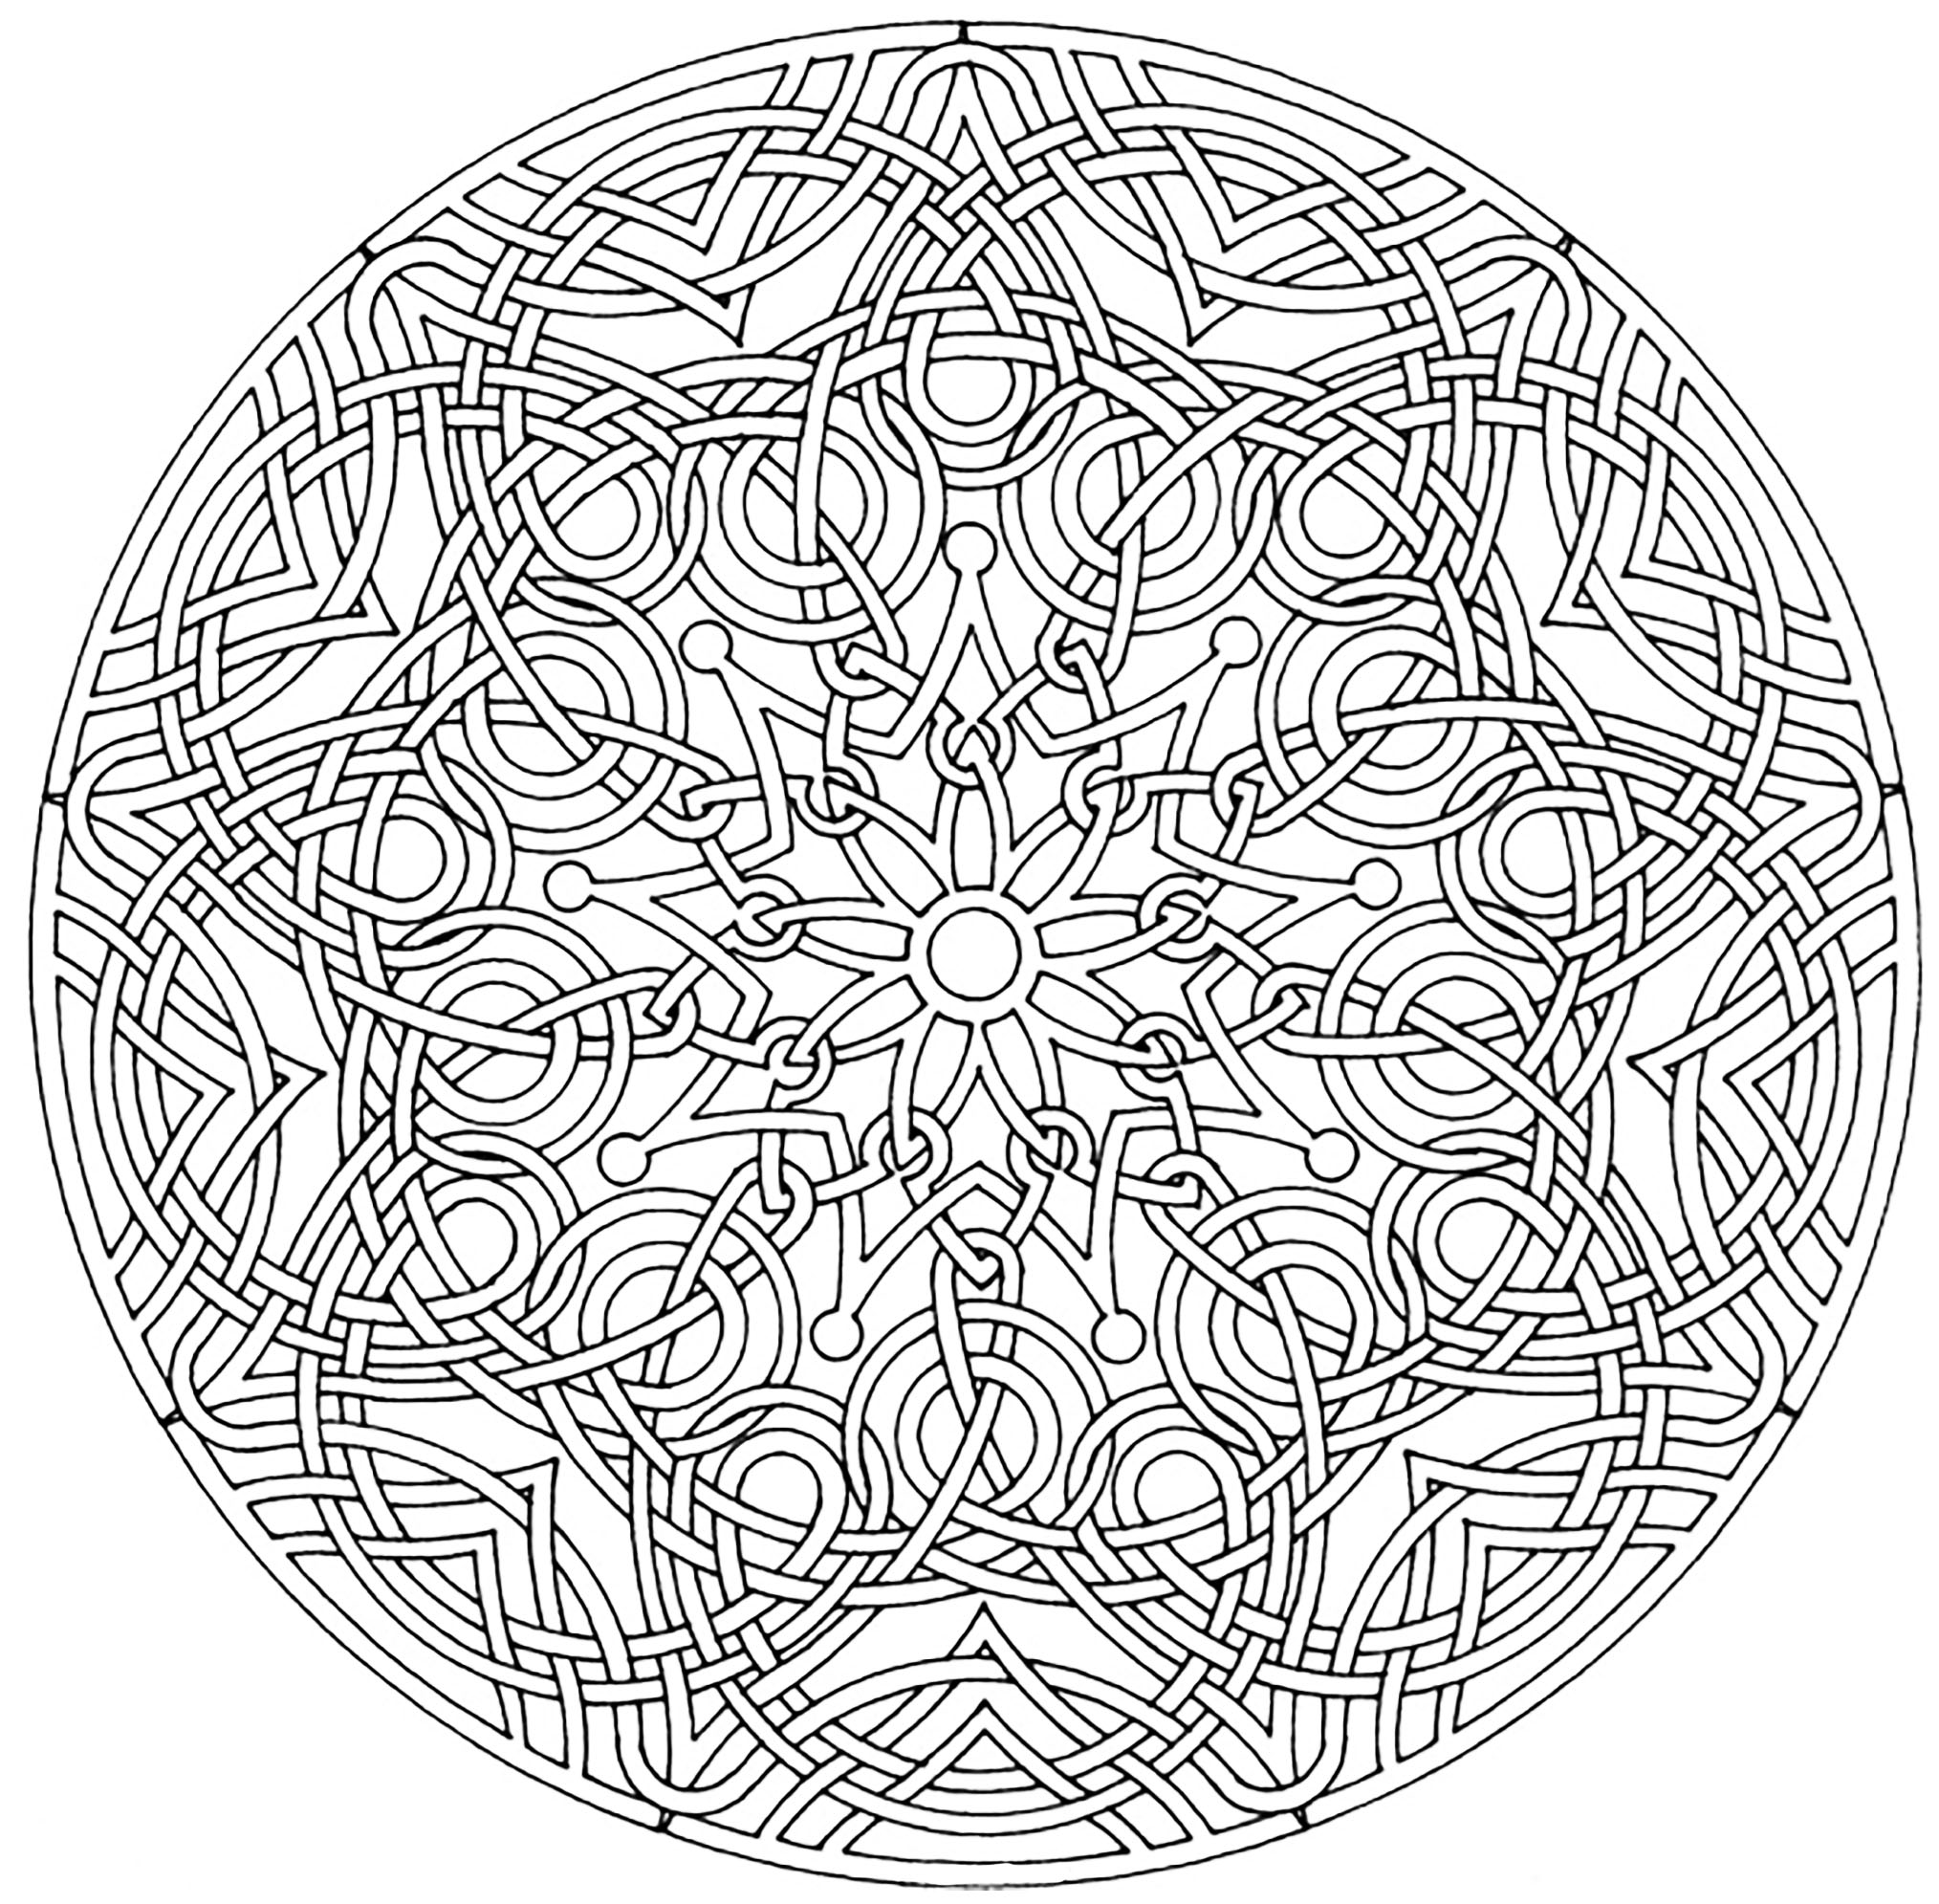 free mandala coloring pages for adults royal majestic mandala difficult mandalas for adults pages free adults for mandala coloring